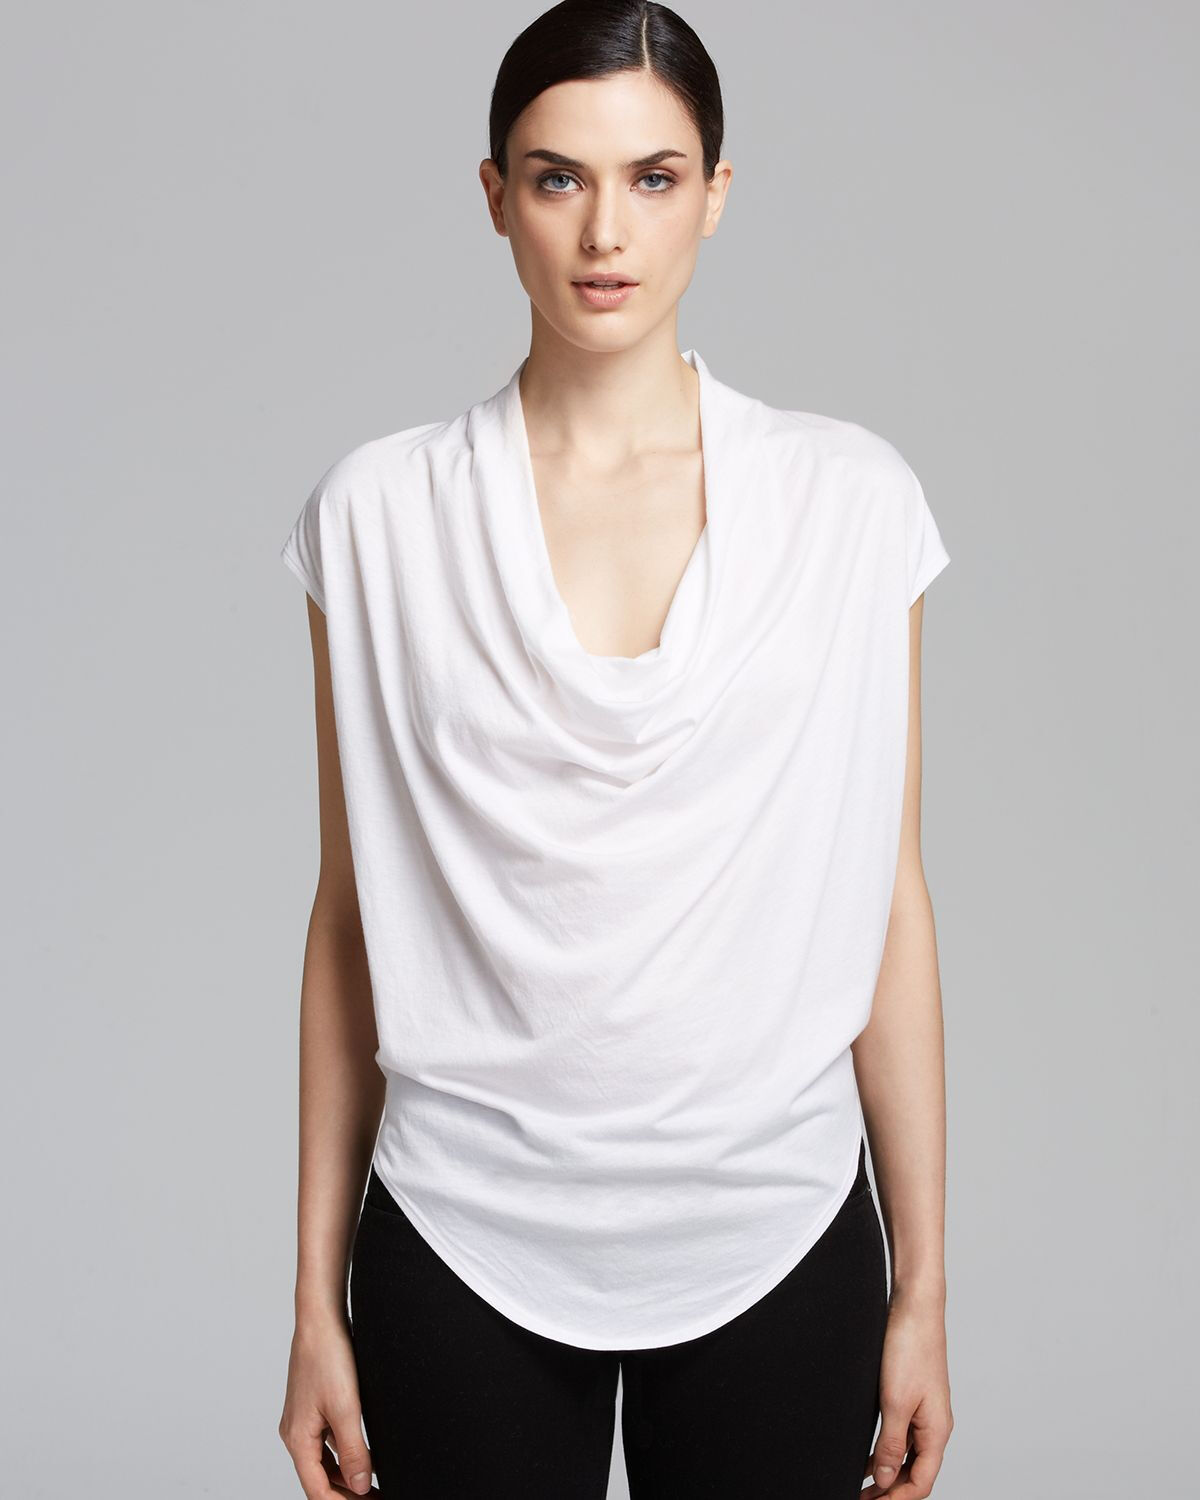 HELMUT LANG Feather Jersey Draped Neck Top T-Shirt in Optic Weiß Größe Large L